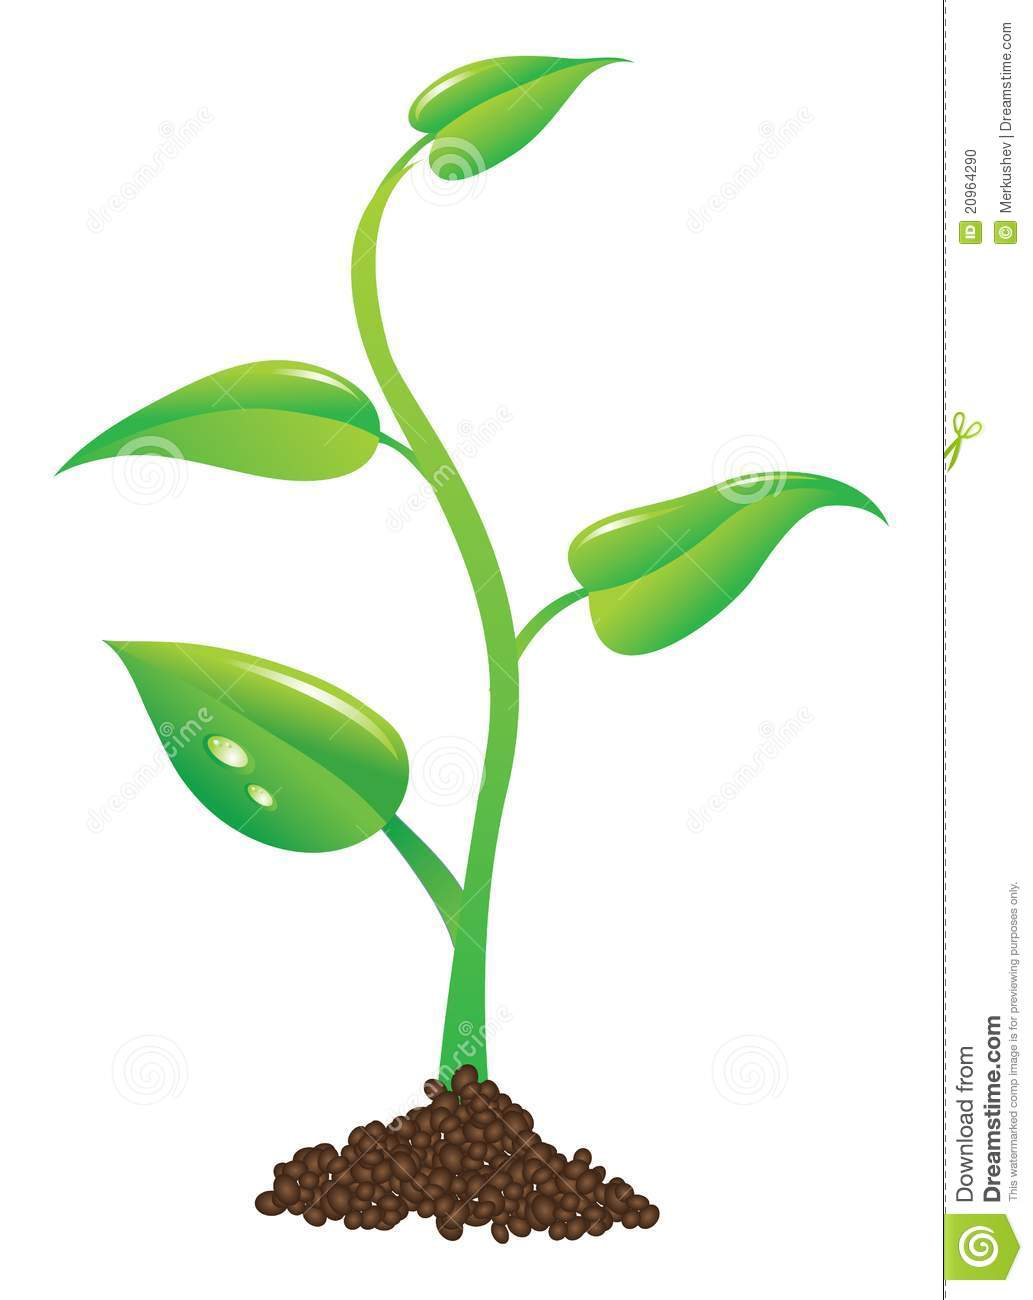 Young Plant Illustration Stock Photo - Image: 20964290